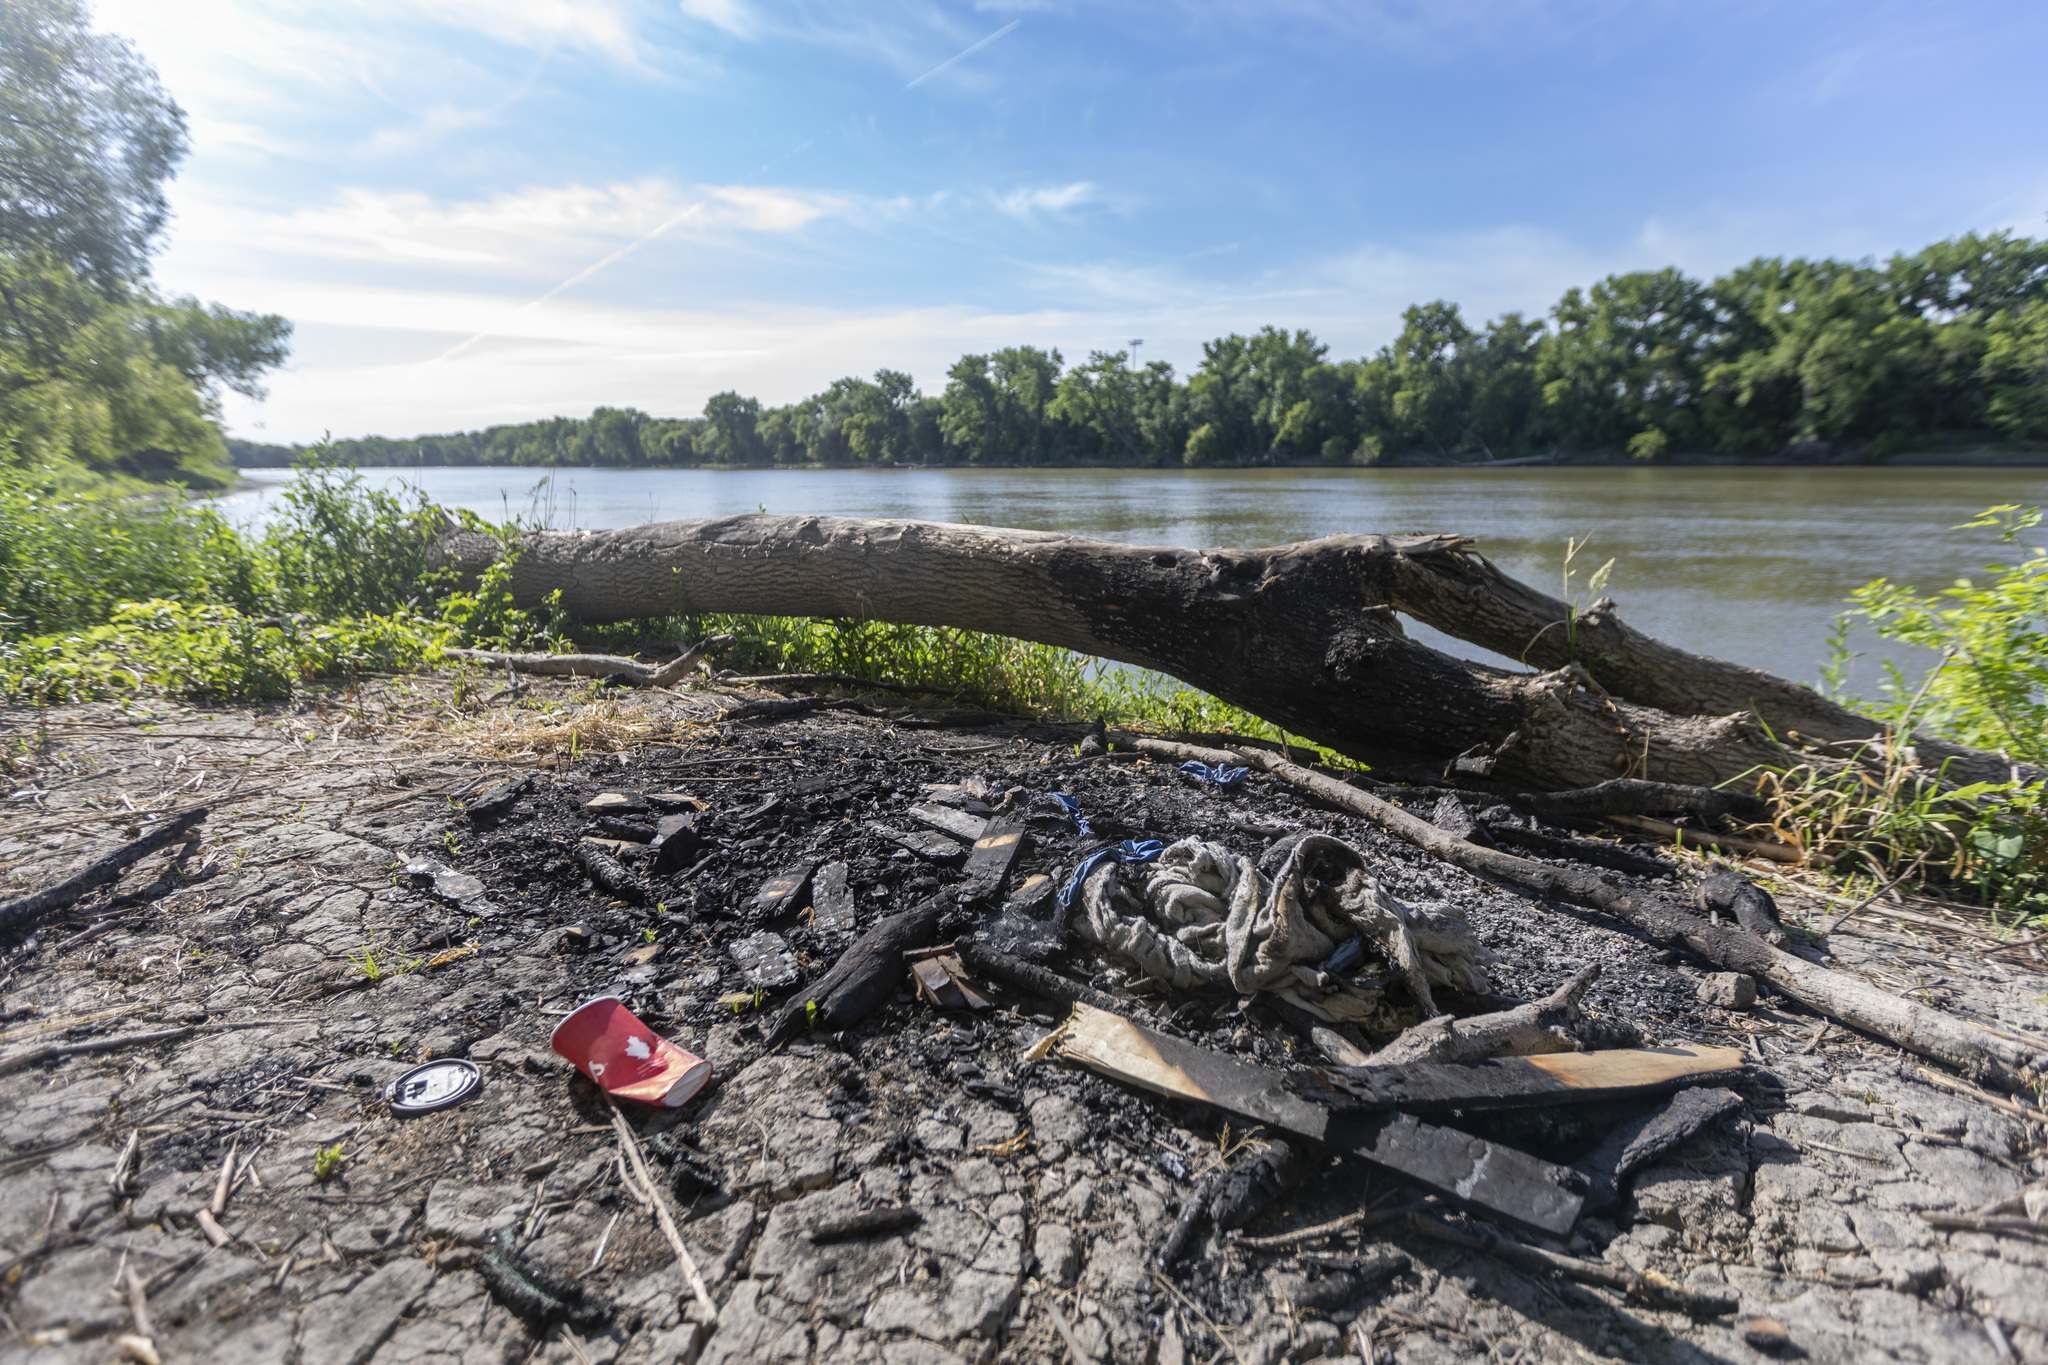 SASHA SEFTER / WINNIPEG FREE PRESS</p><p>A recently used fire pit on the bank of the Red River in the North end of Fort Douglas Park.</p>